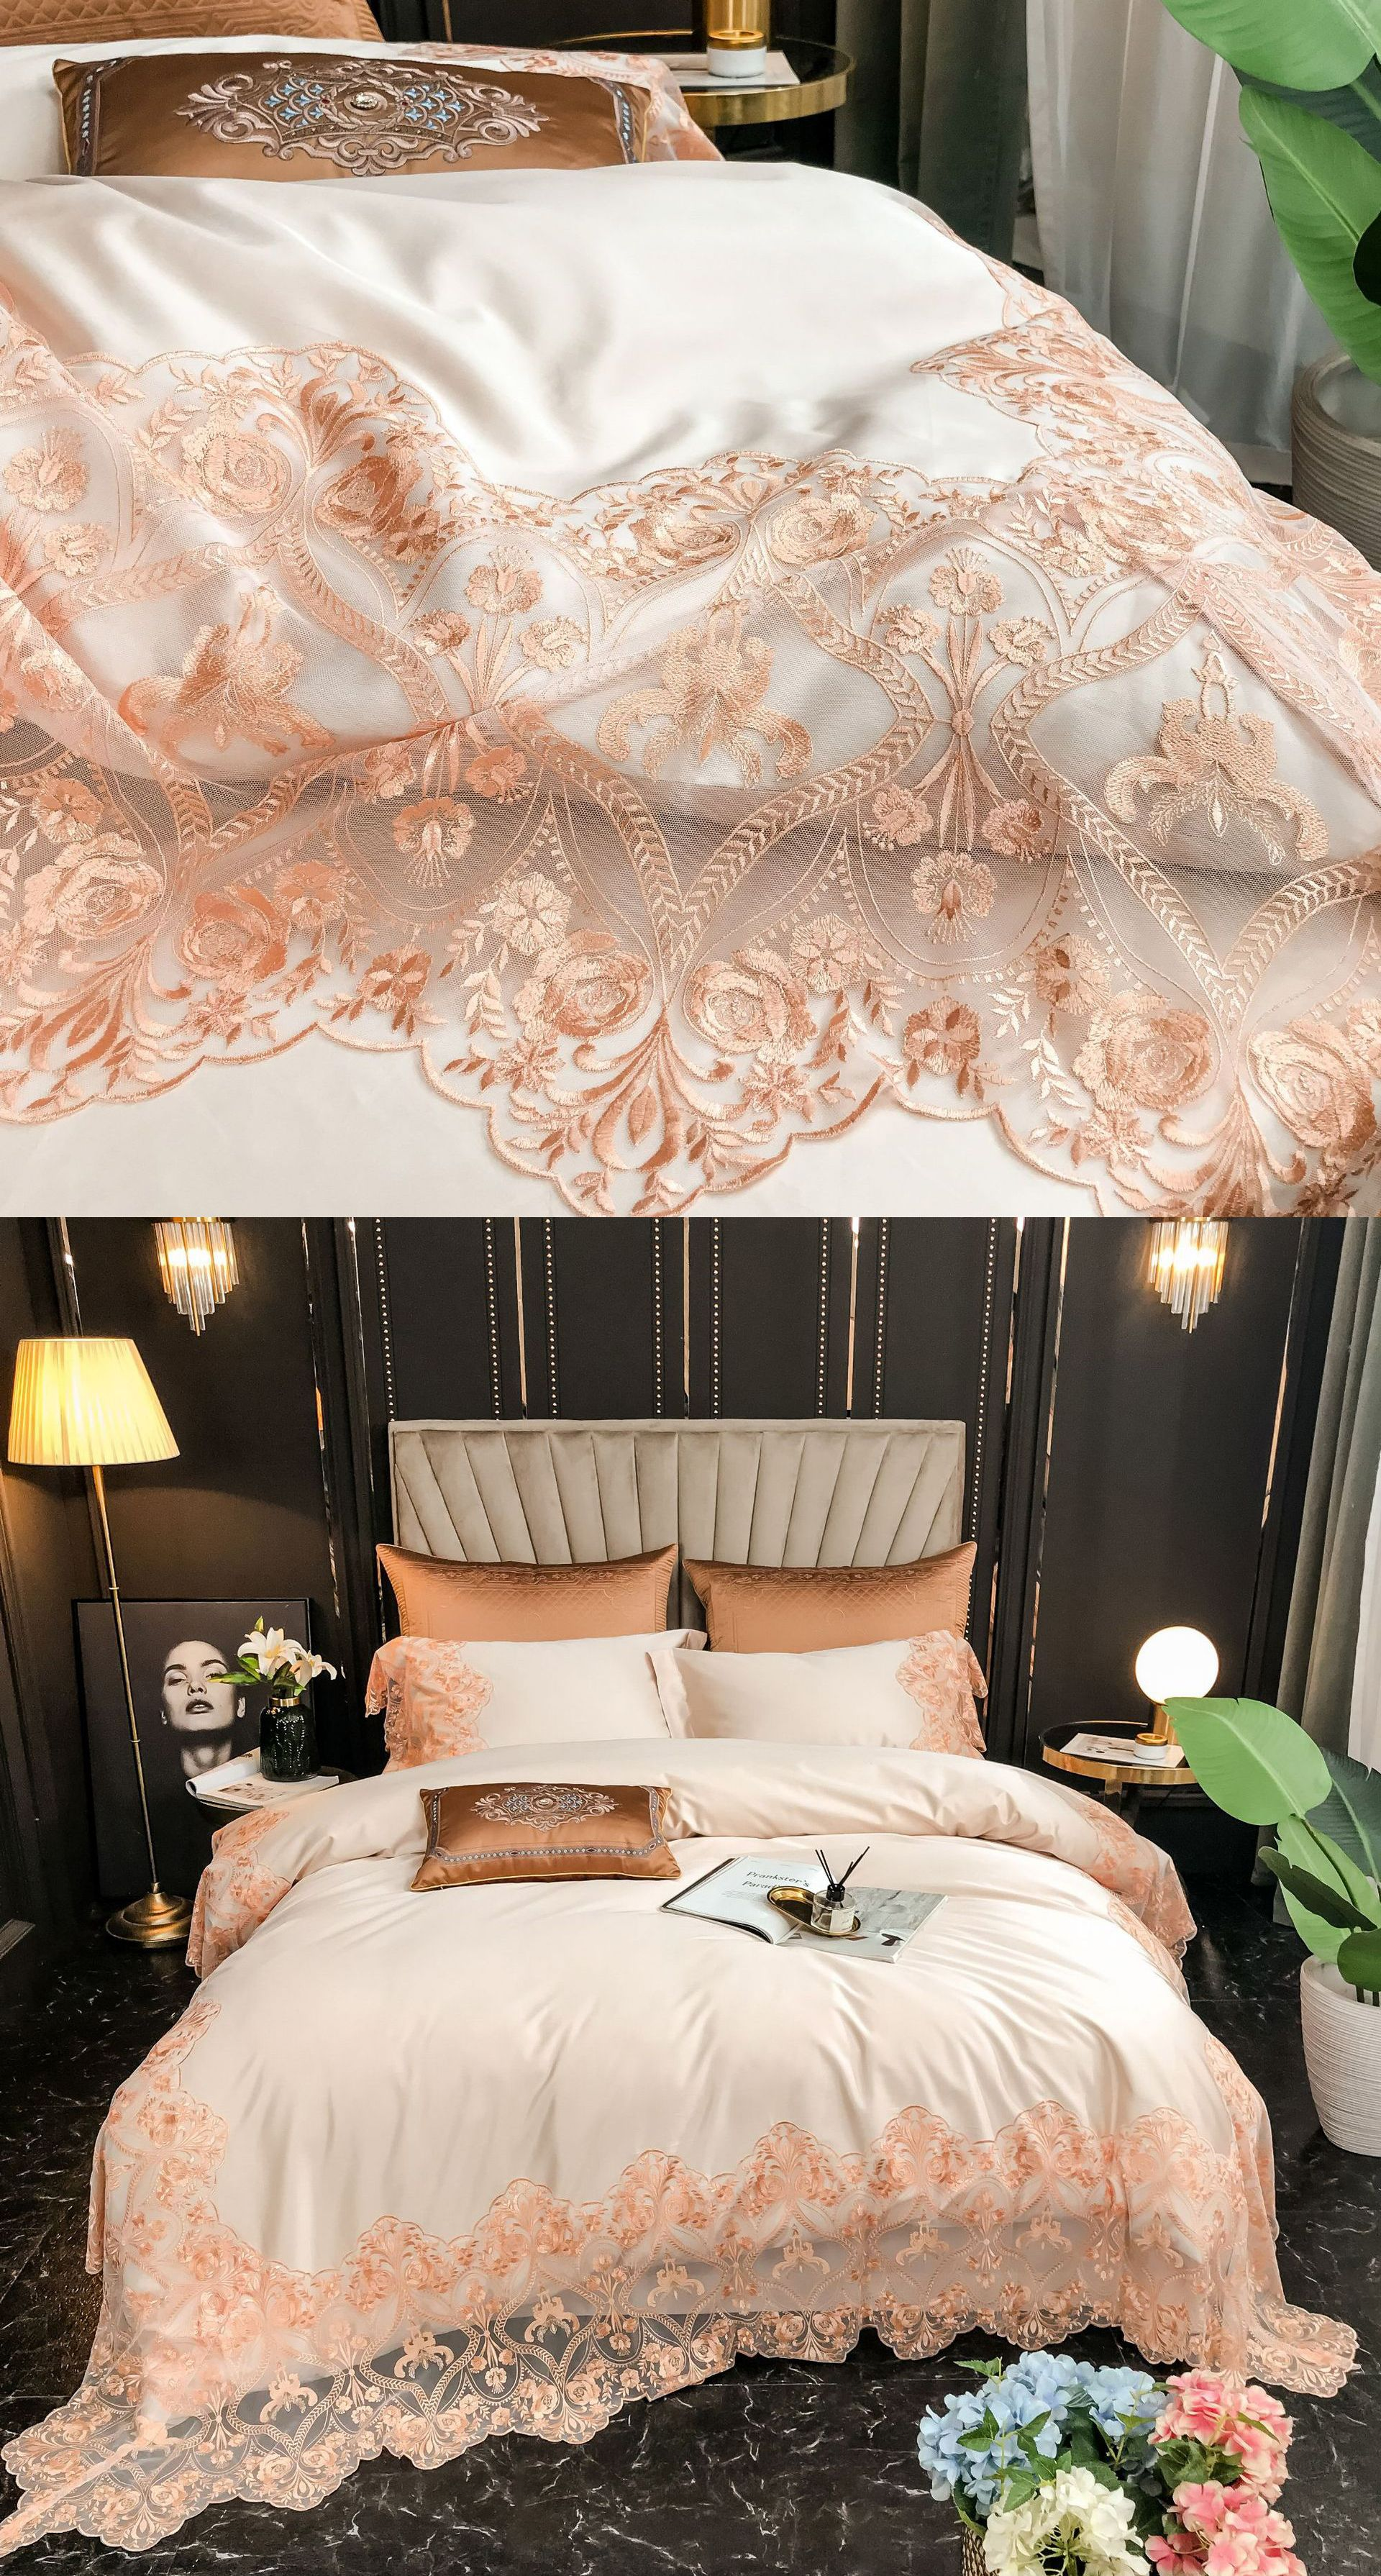 Champion French Lace Duvet Cover Set in 2020 Shabby chic